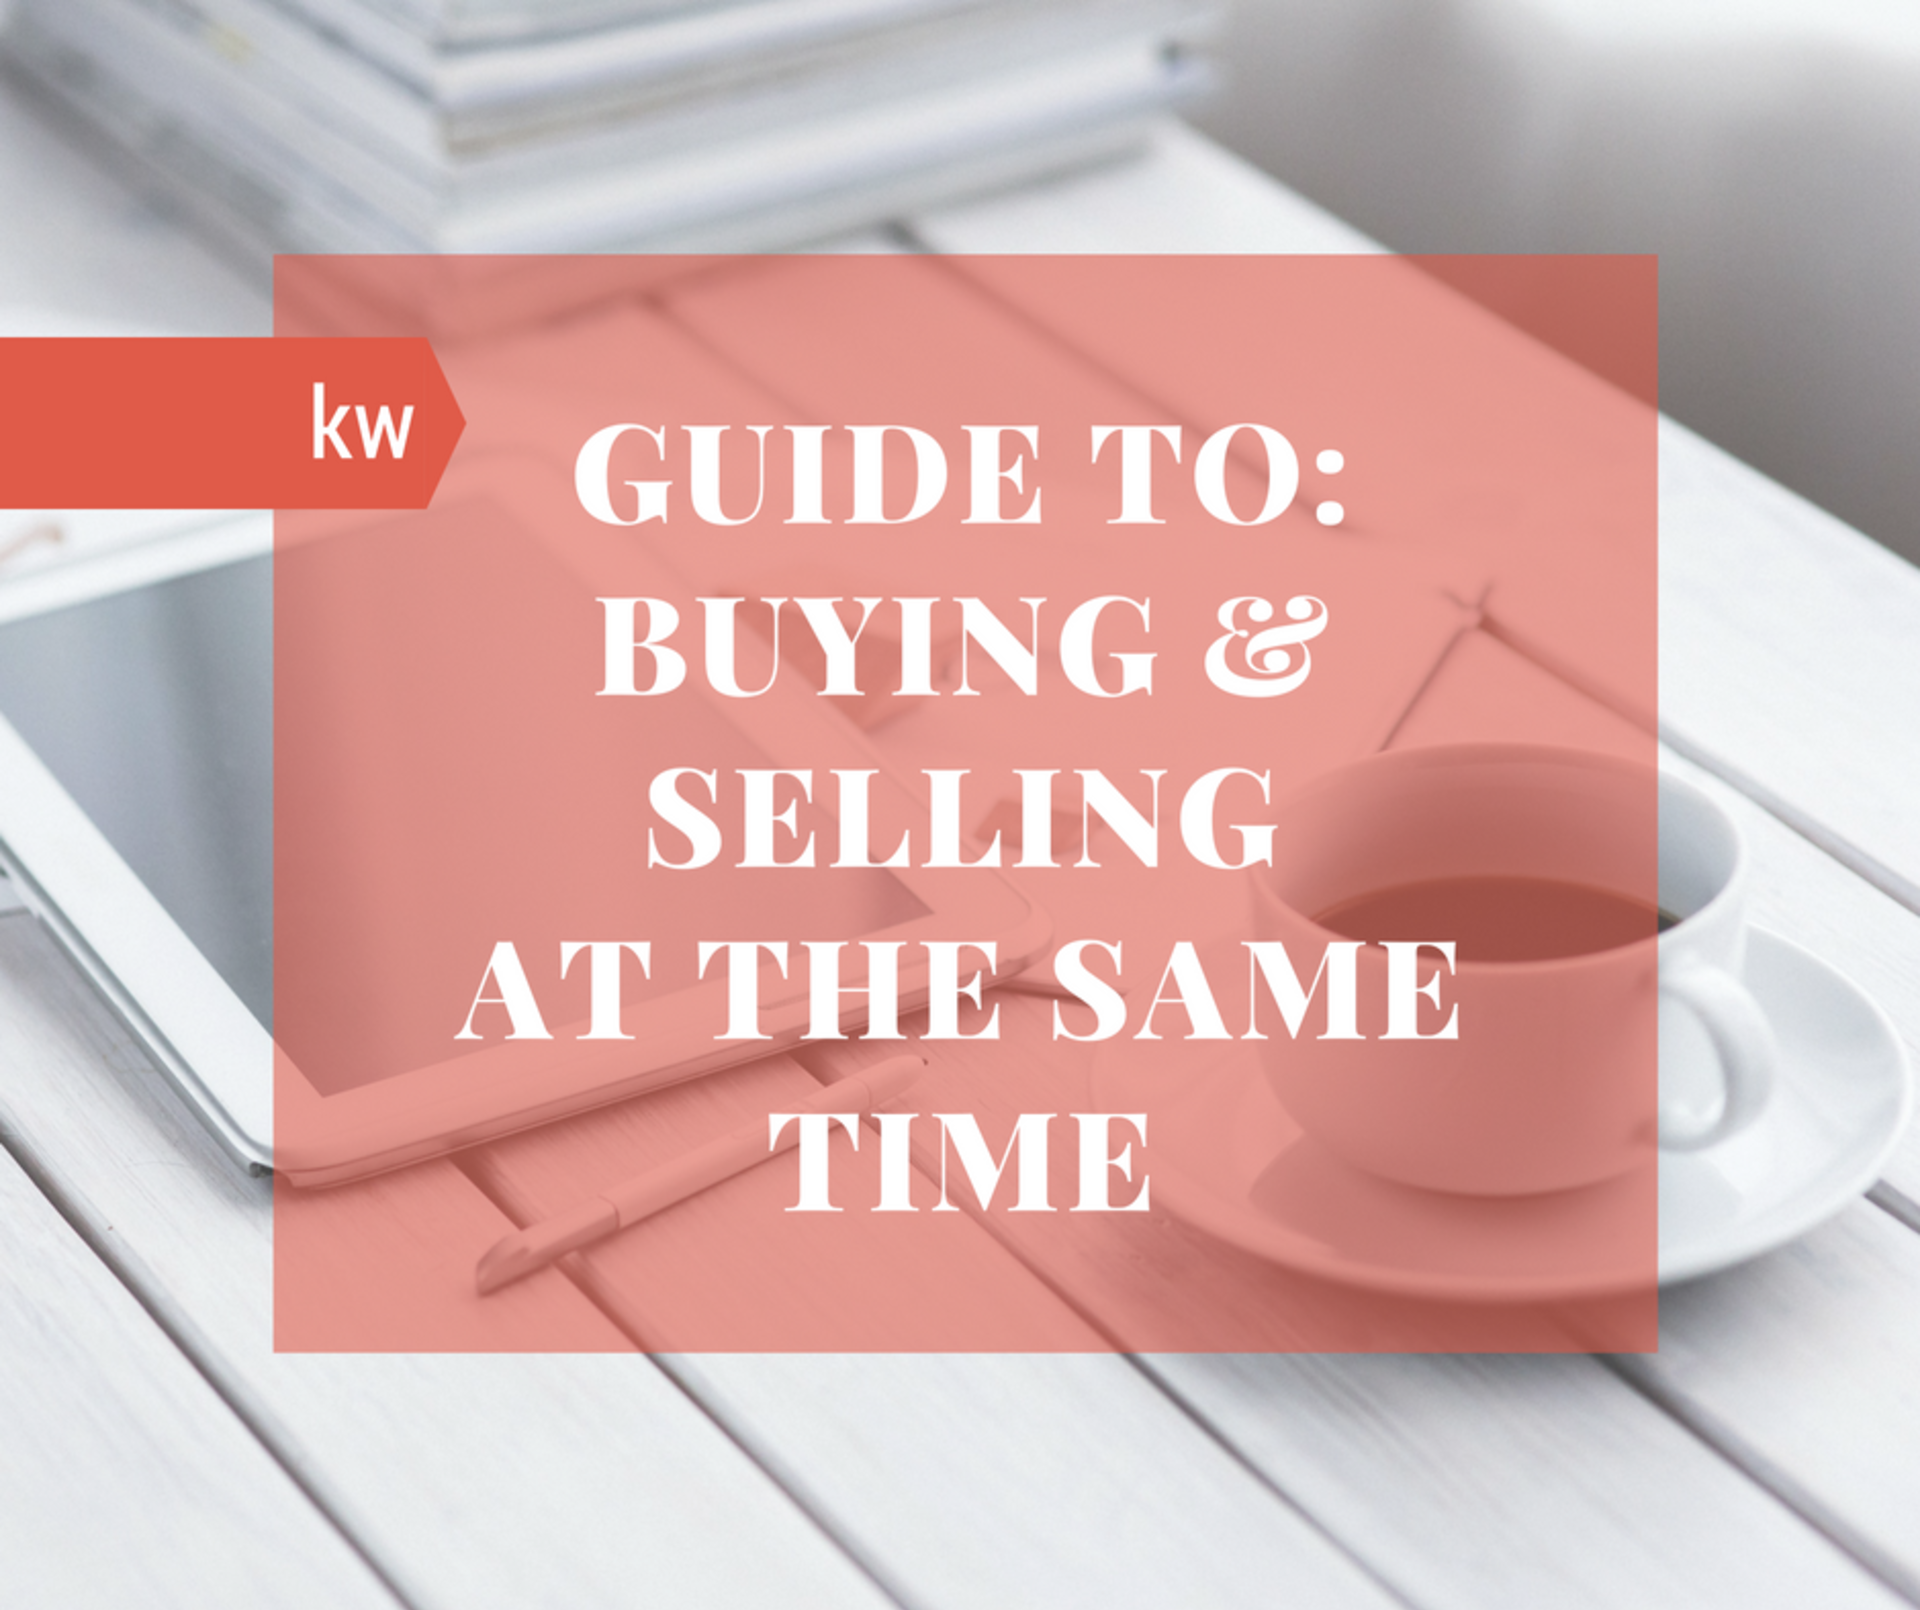 Buying & Selling Your Home at the Same Time